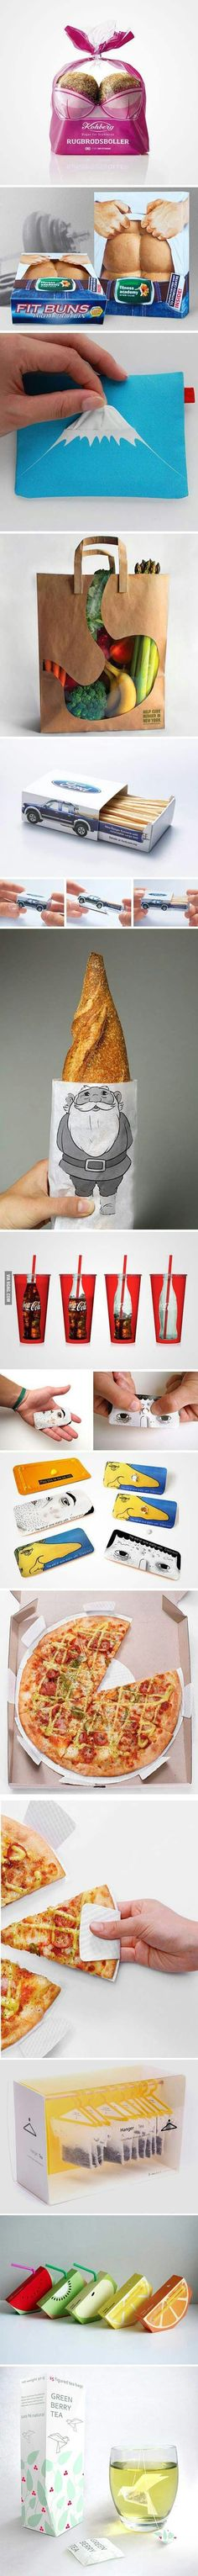 These are some clever and cool designs #packaging #ads #advertising #design #publicidad #diseño #diseny